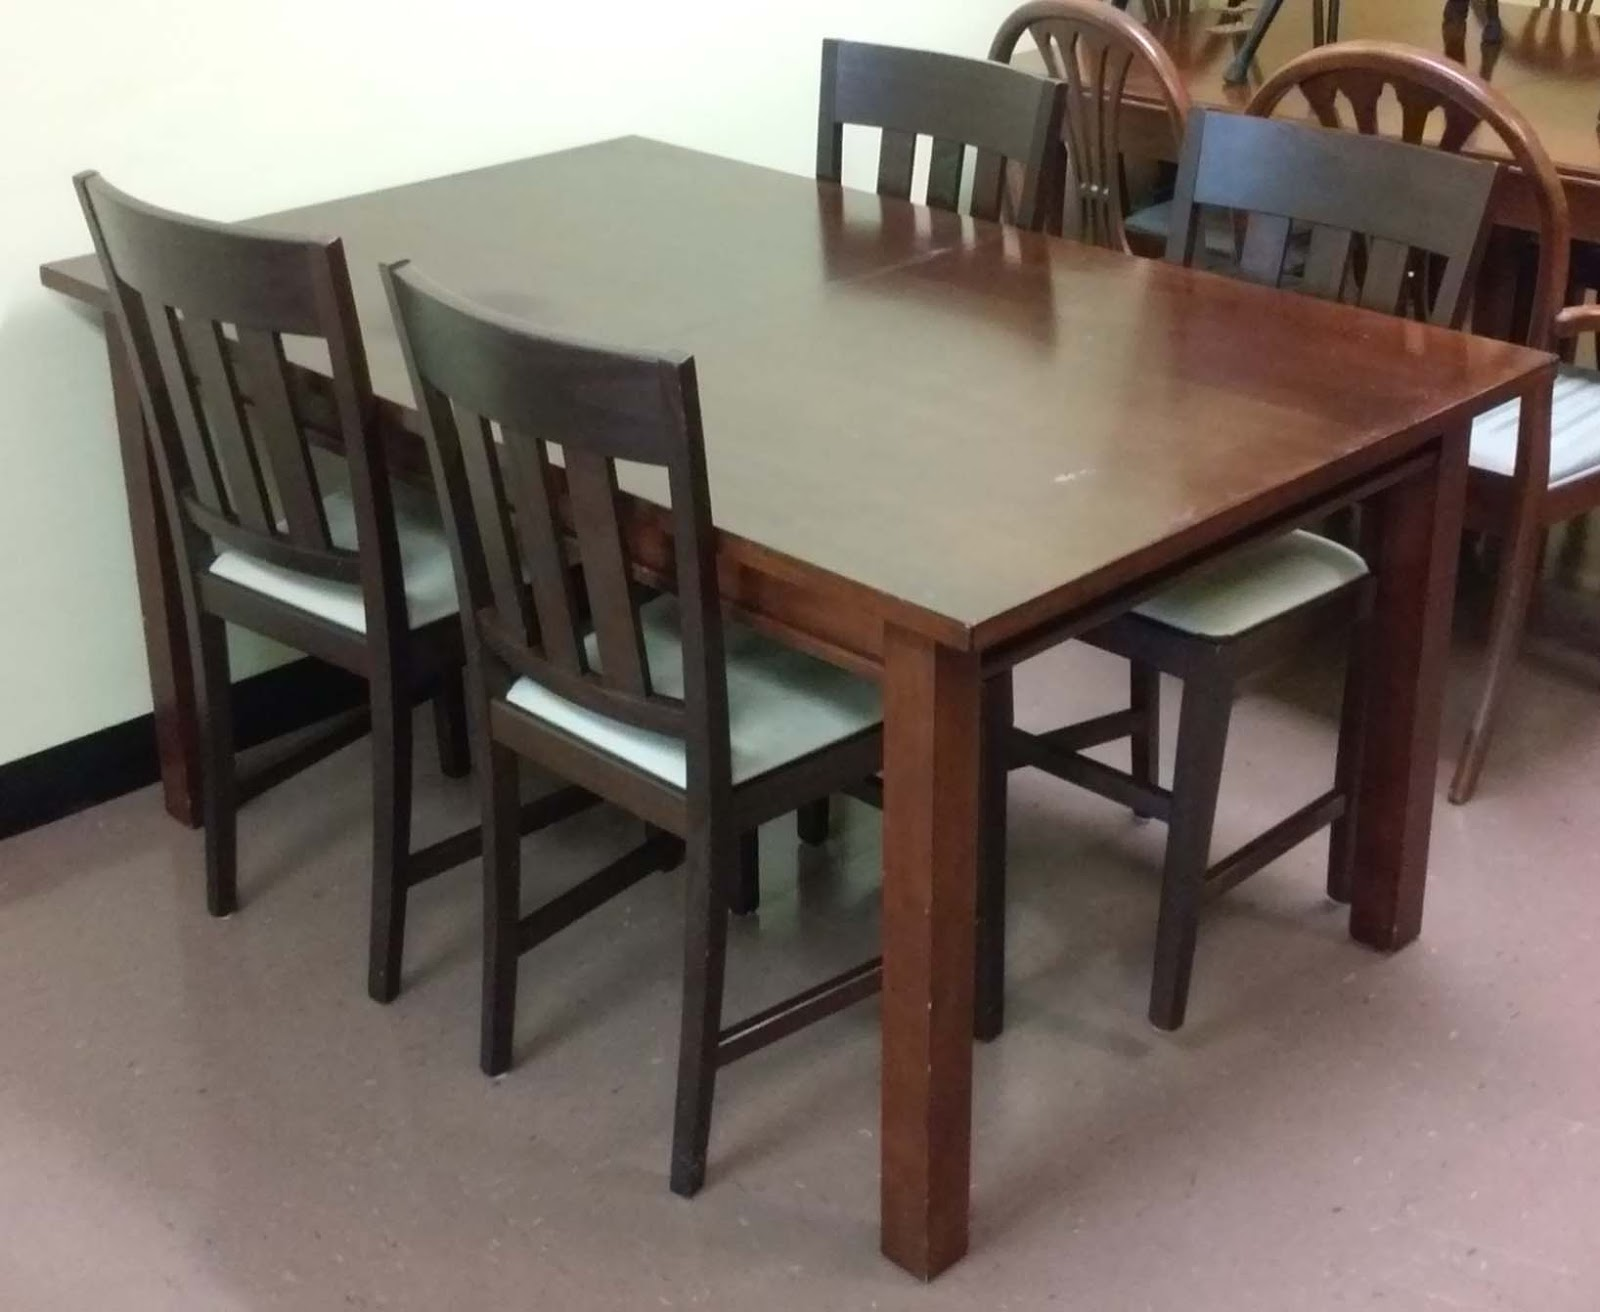 uhuru furniture collectibles sold modern asian dining set table 1 leaf 4 chairs 170. Black Bedroom Furniture Sets. Home Design Ideas